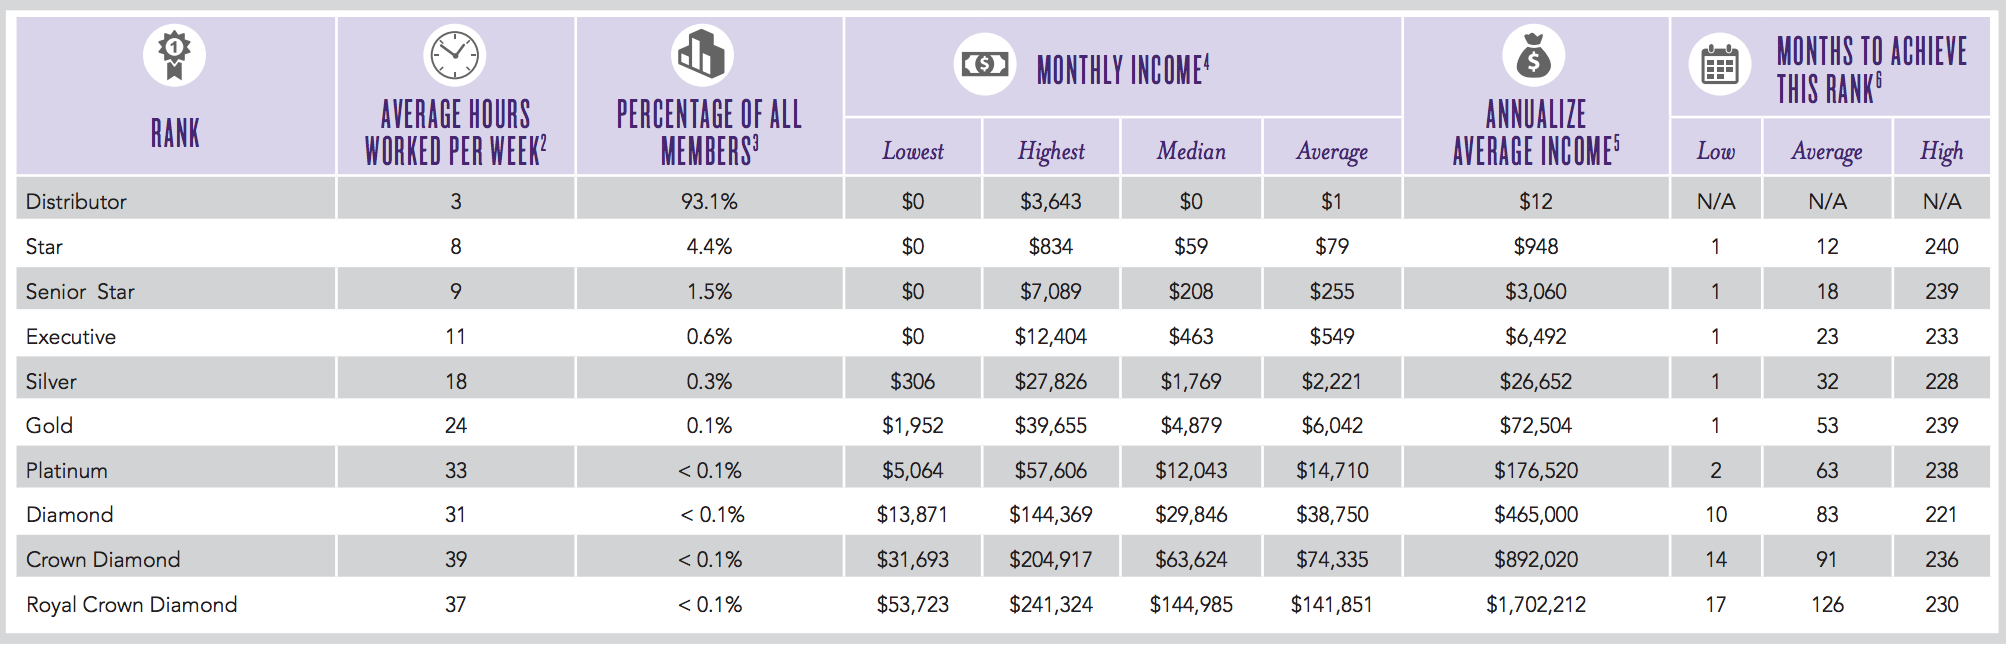 Young Living Income Disclosure